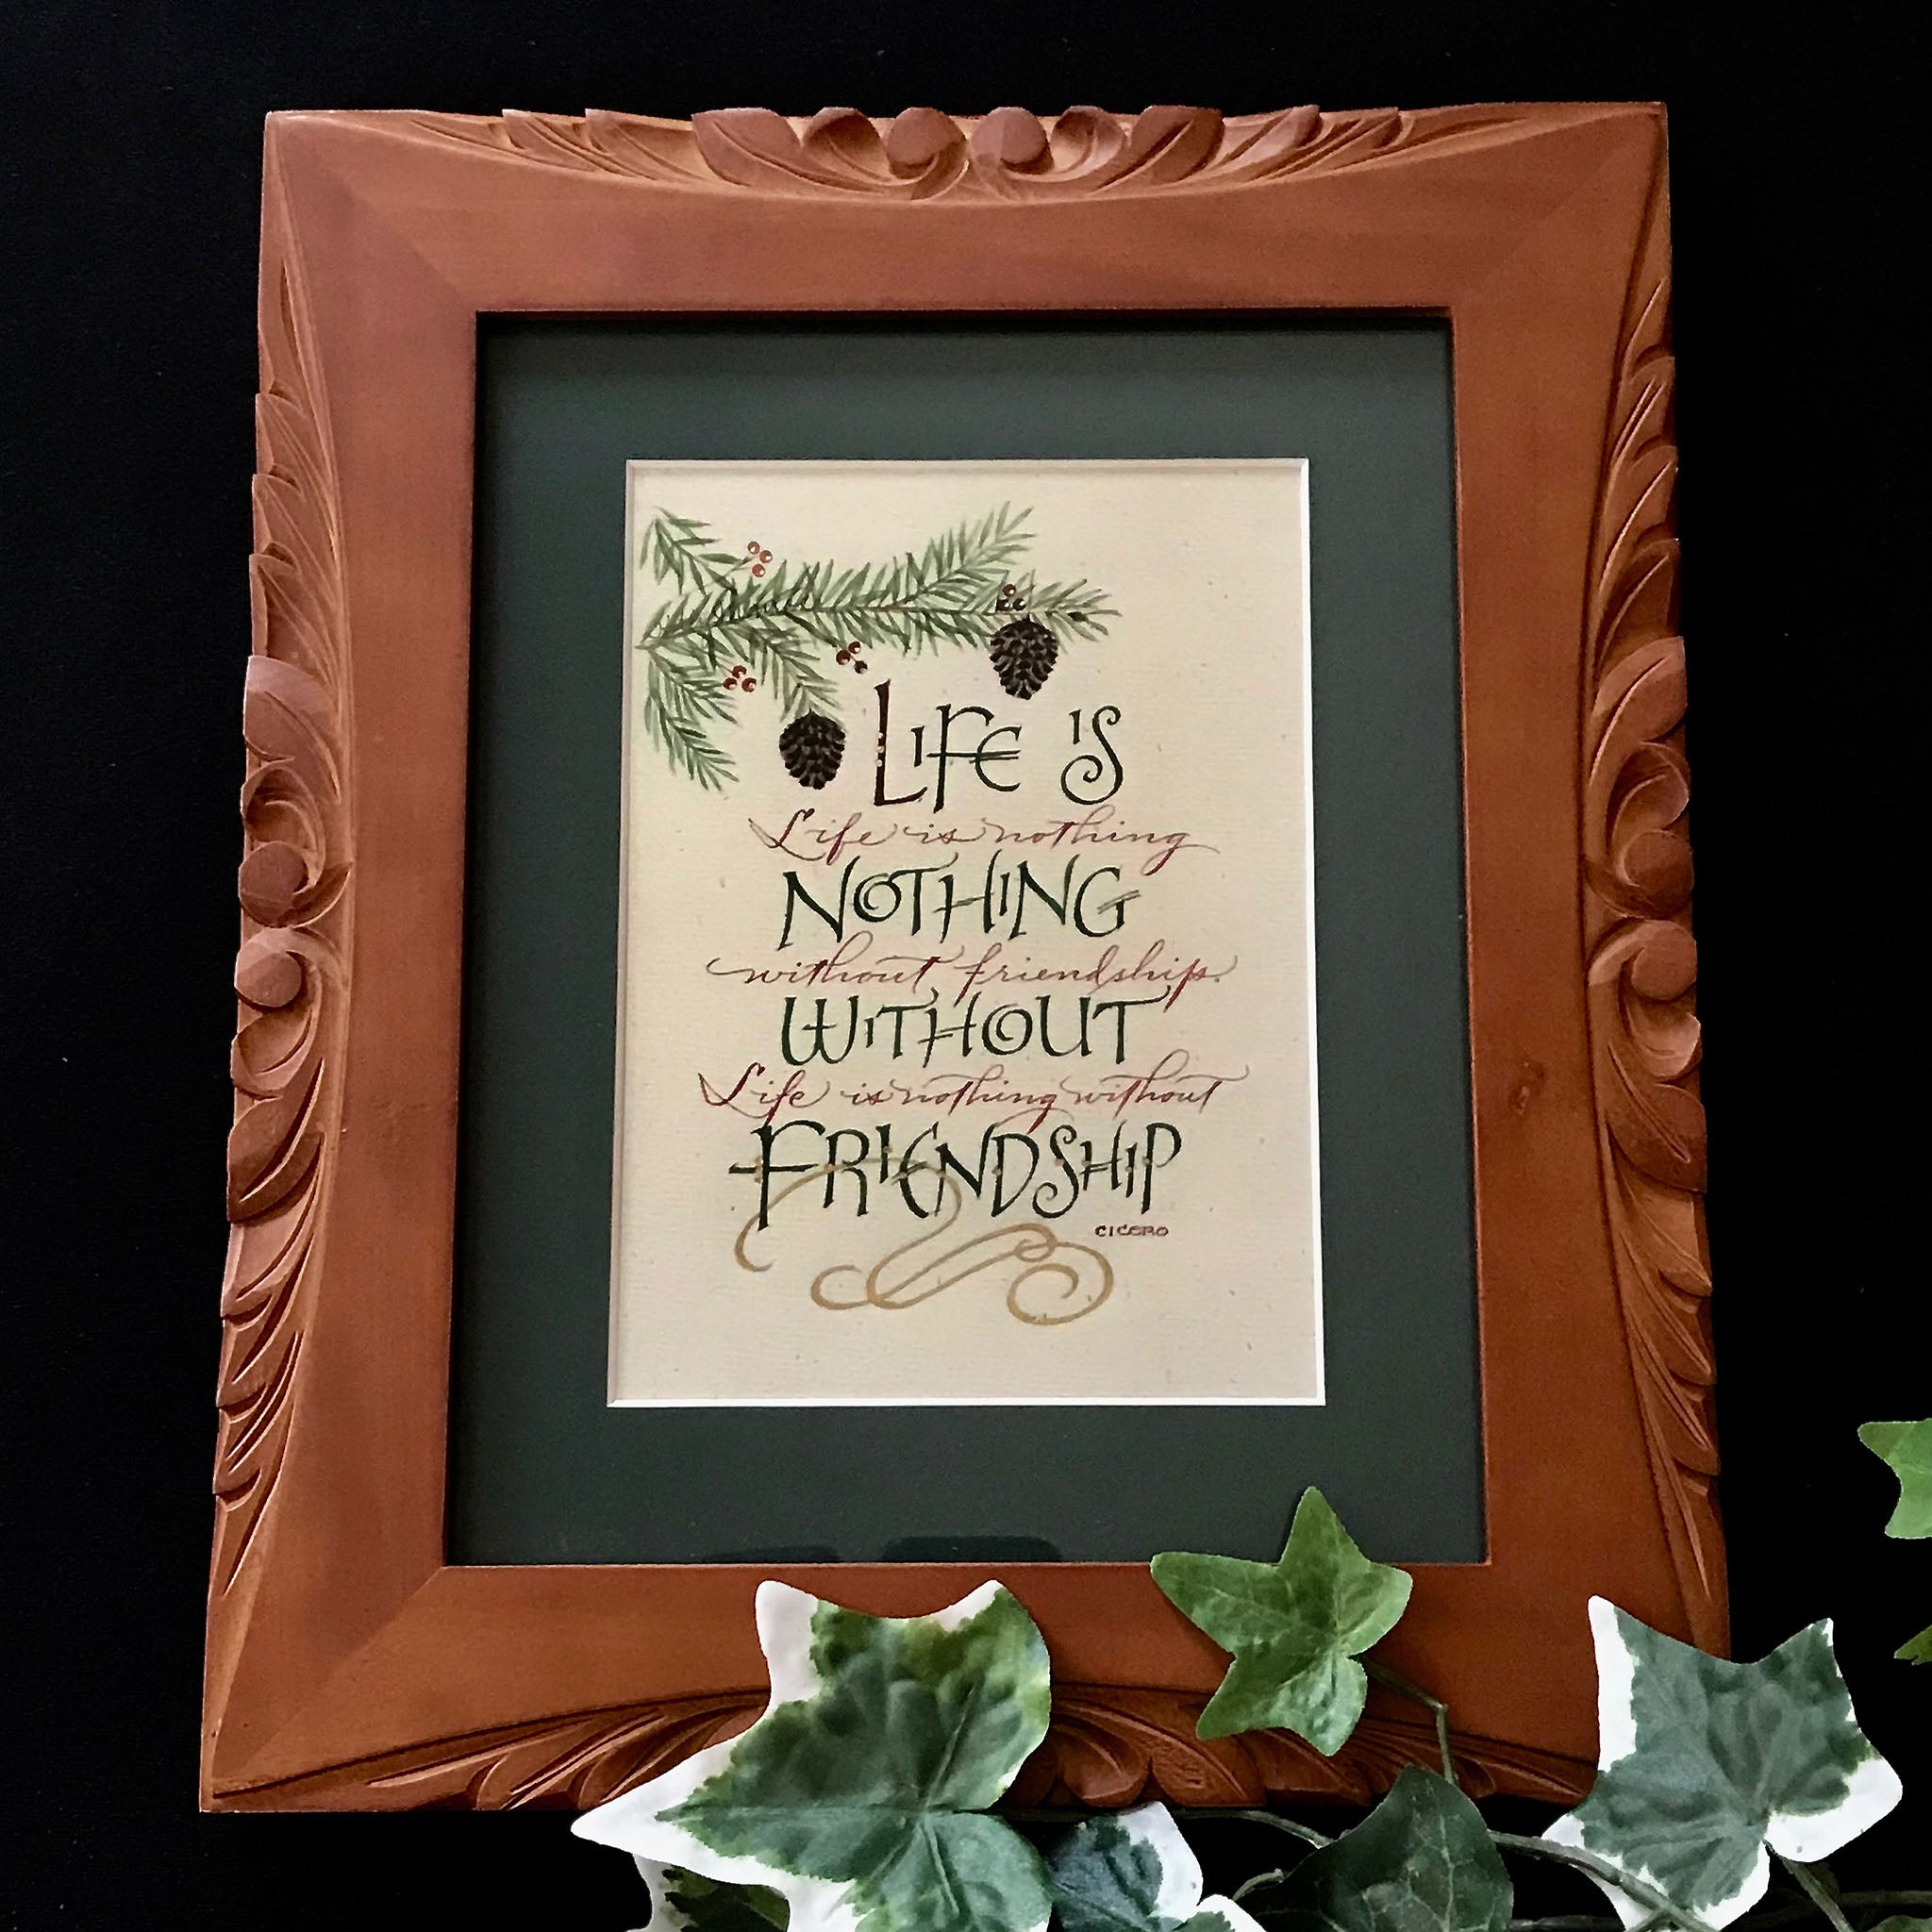 Life is nothing without friendship Cicero - Holly Monroe Calligrapher